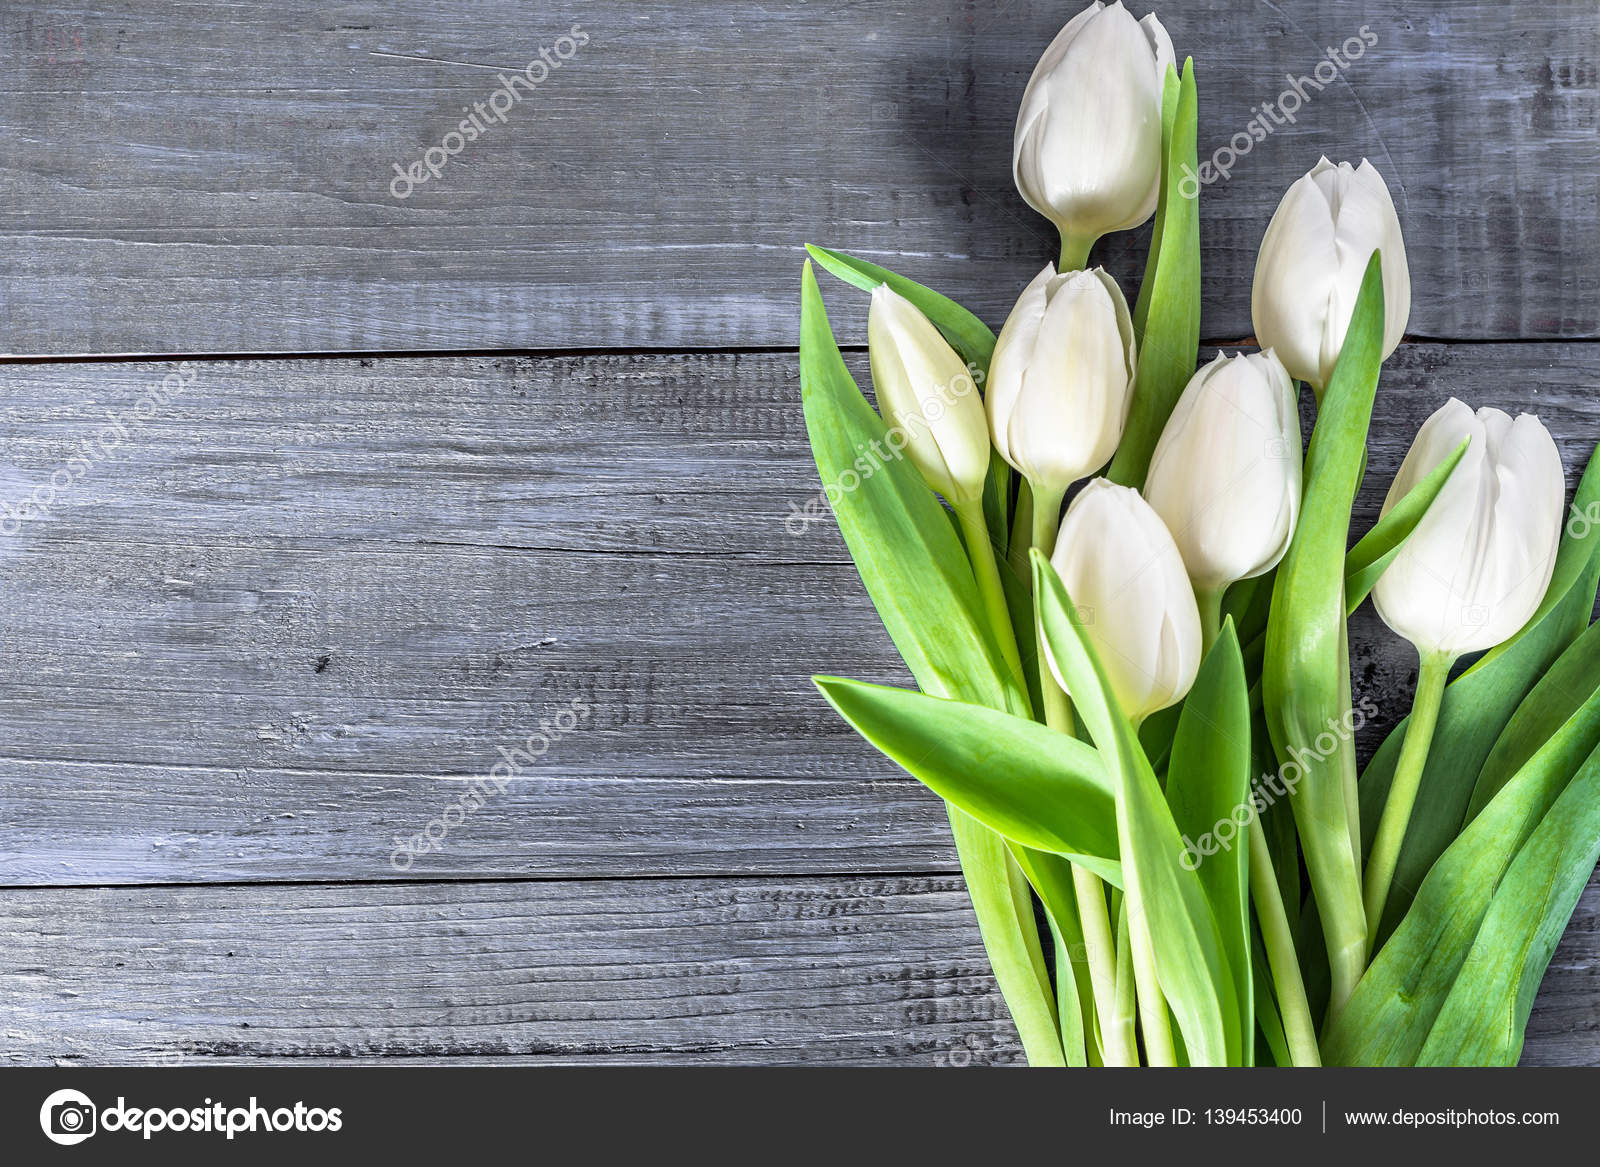 White Tulips Flowers On Wooden Table With Copy Space Top View